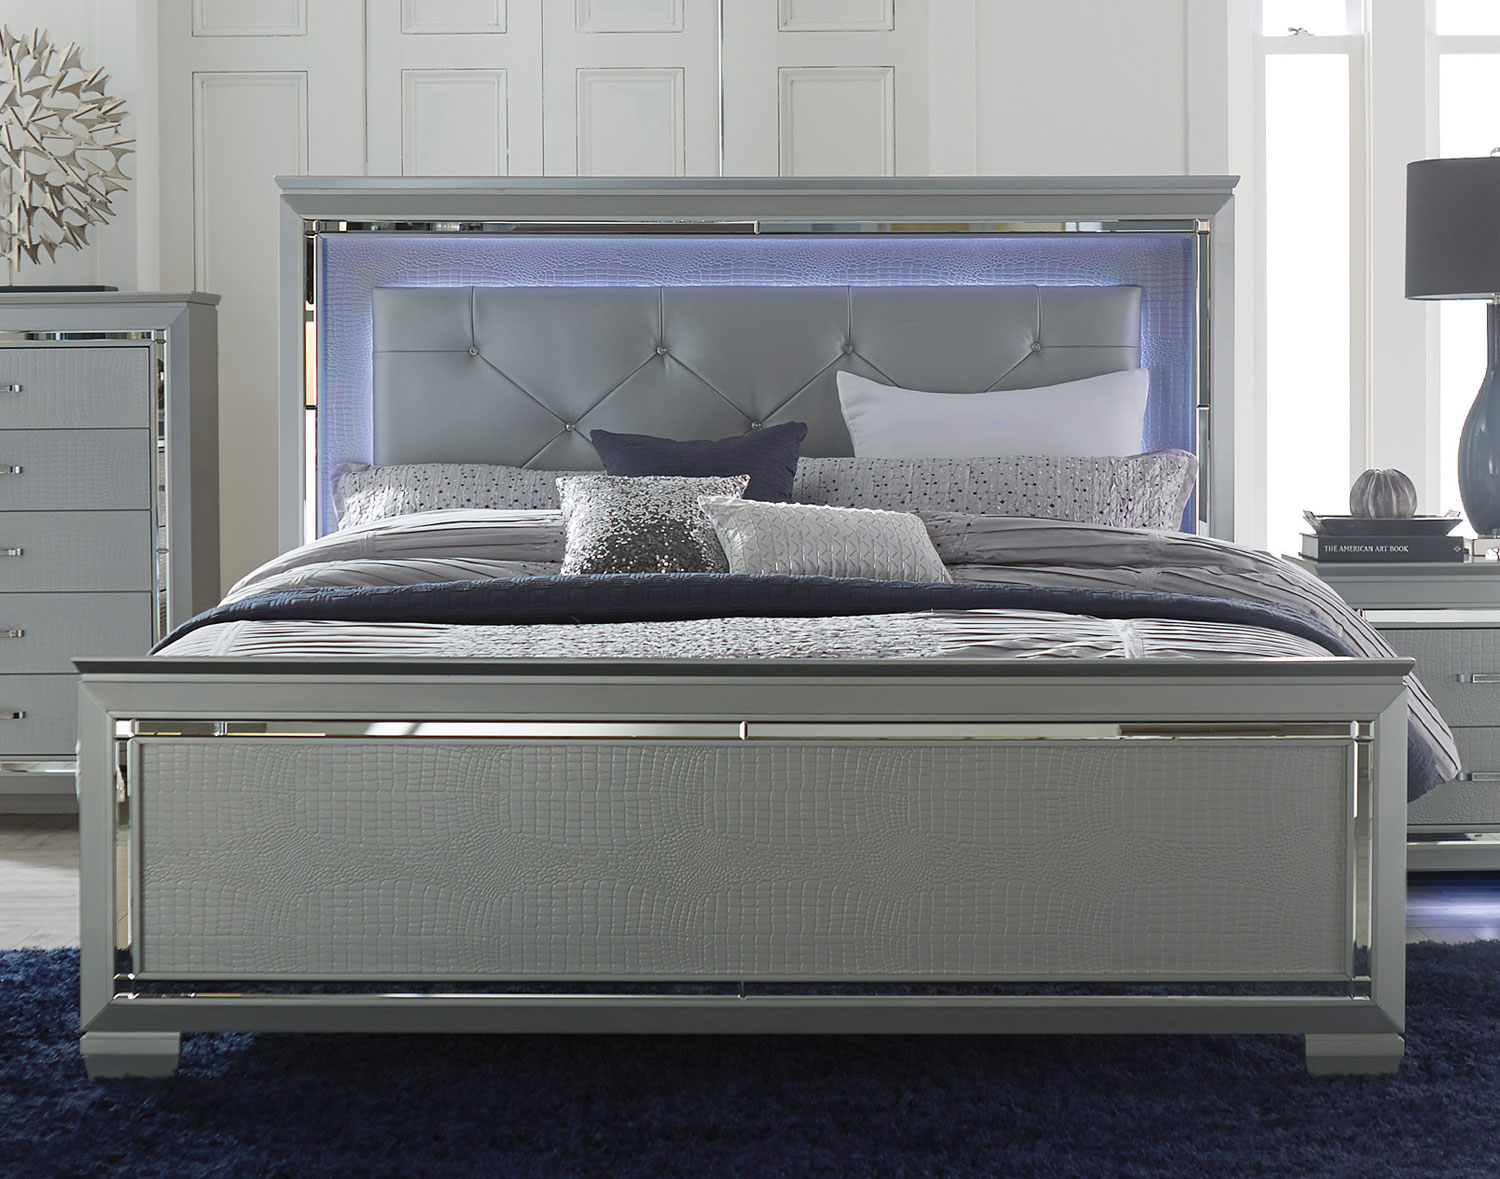 Homelegance allura bedroom set with led lighting silver for Bedroom set and mattress